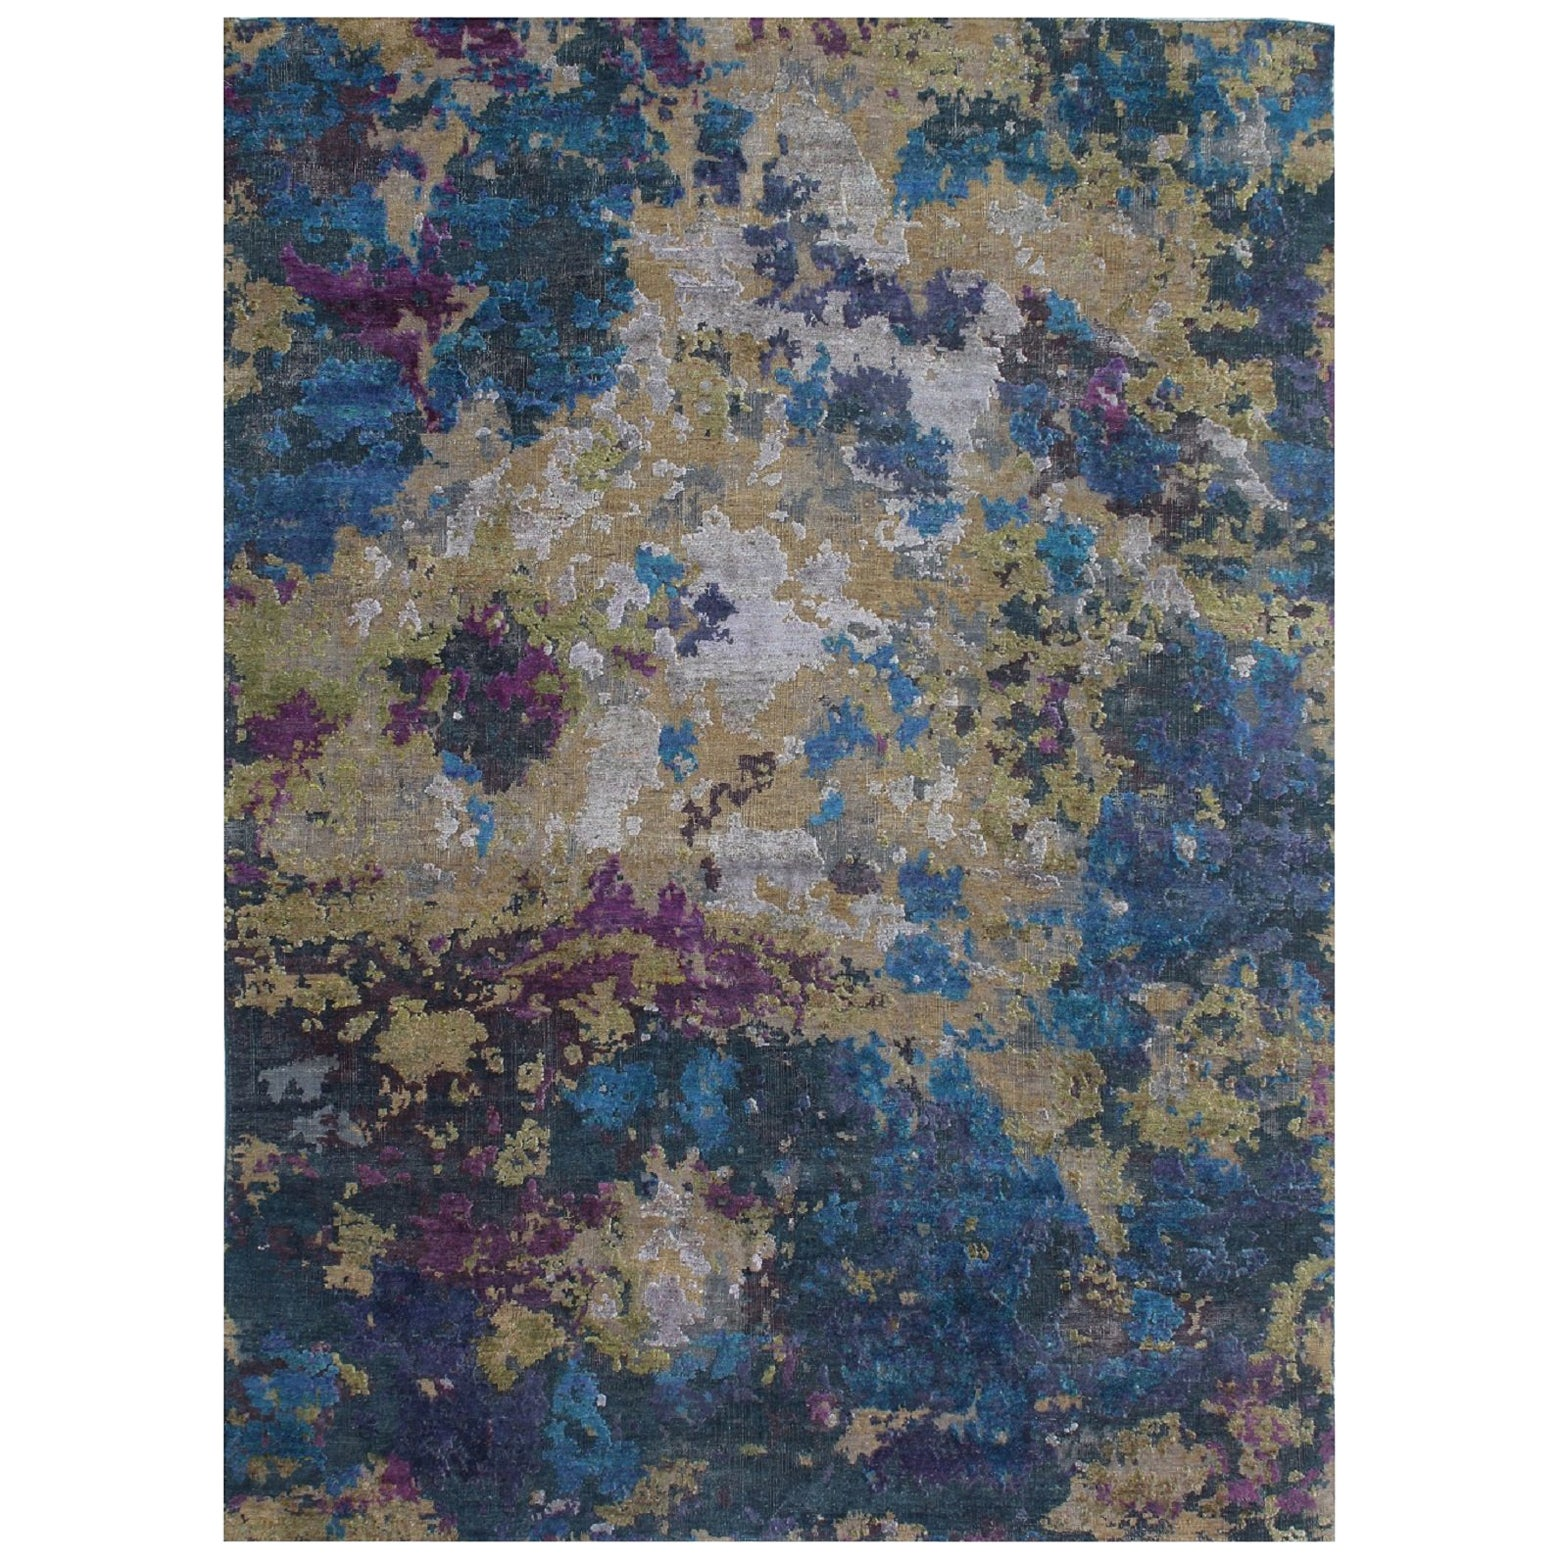 Organic Contemporary Green Turquoise Purple Hand-Knotted Wool and Silk Rug